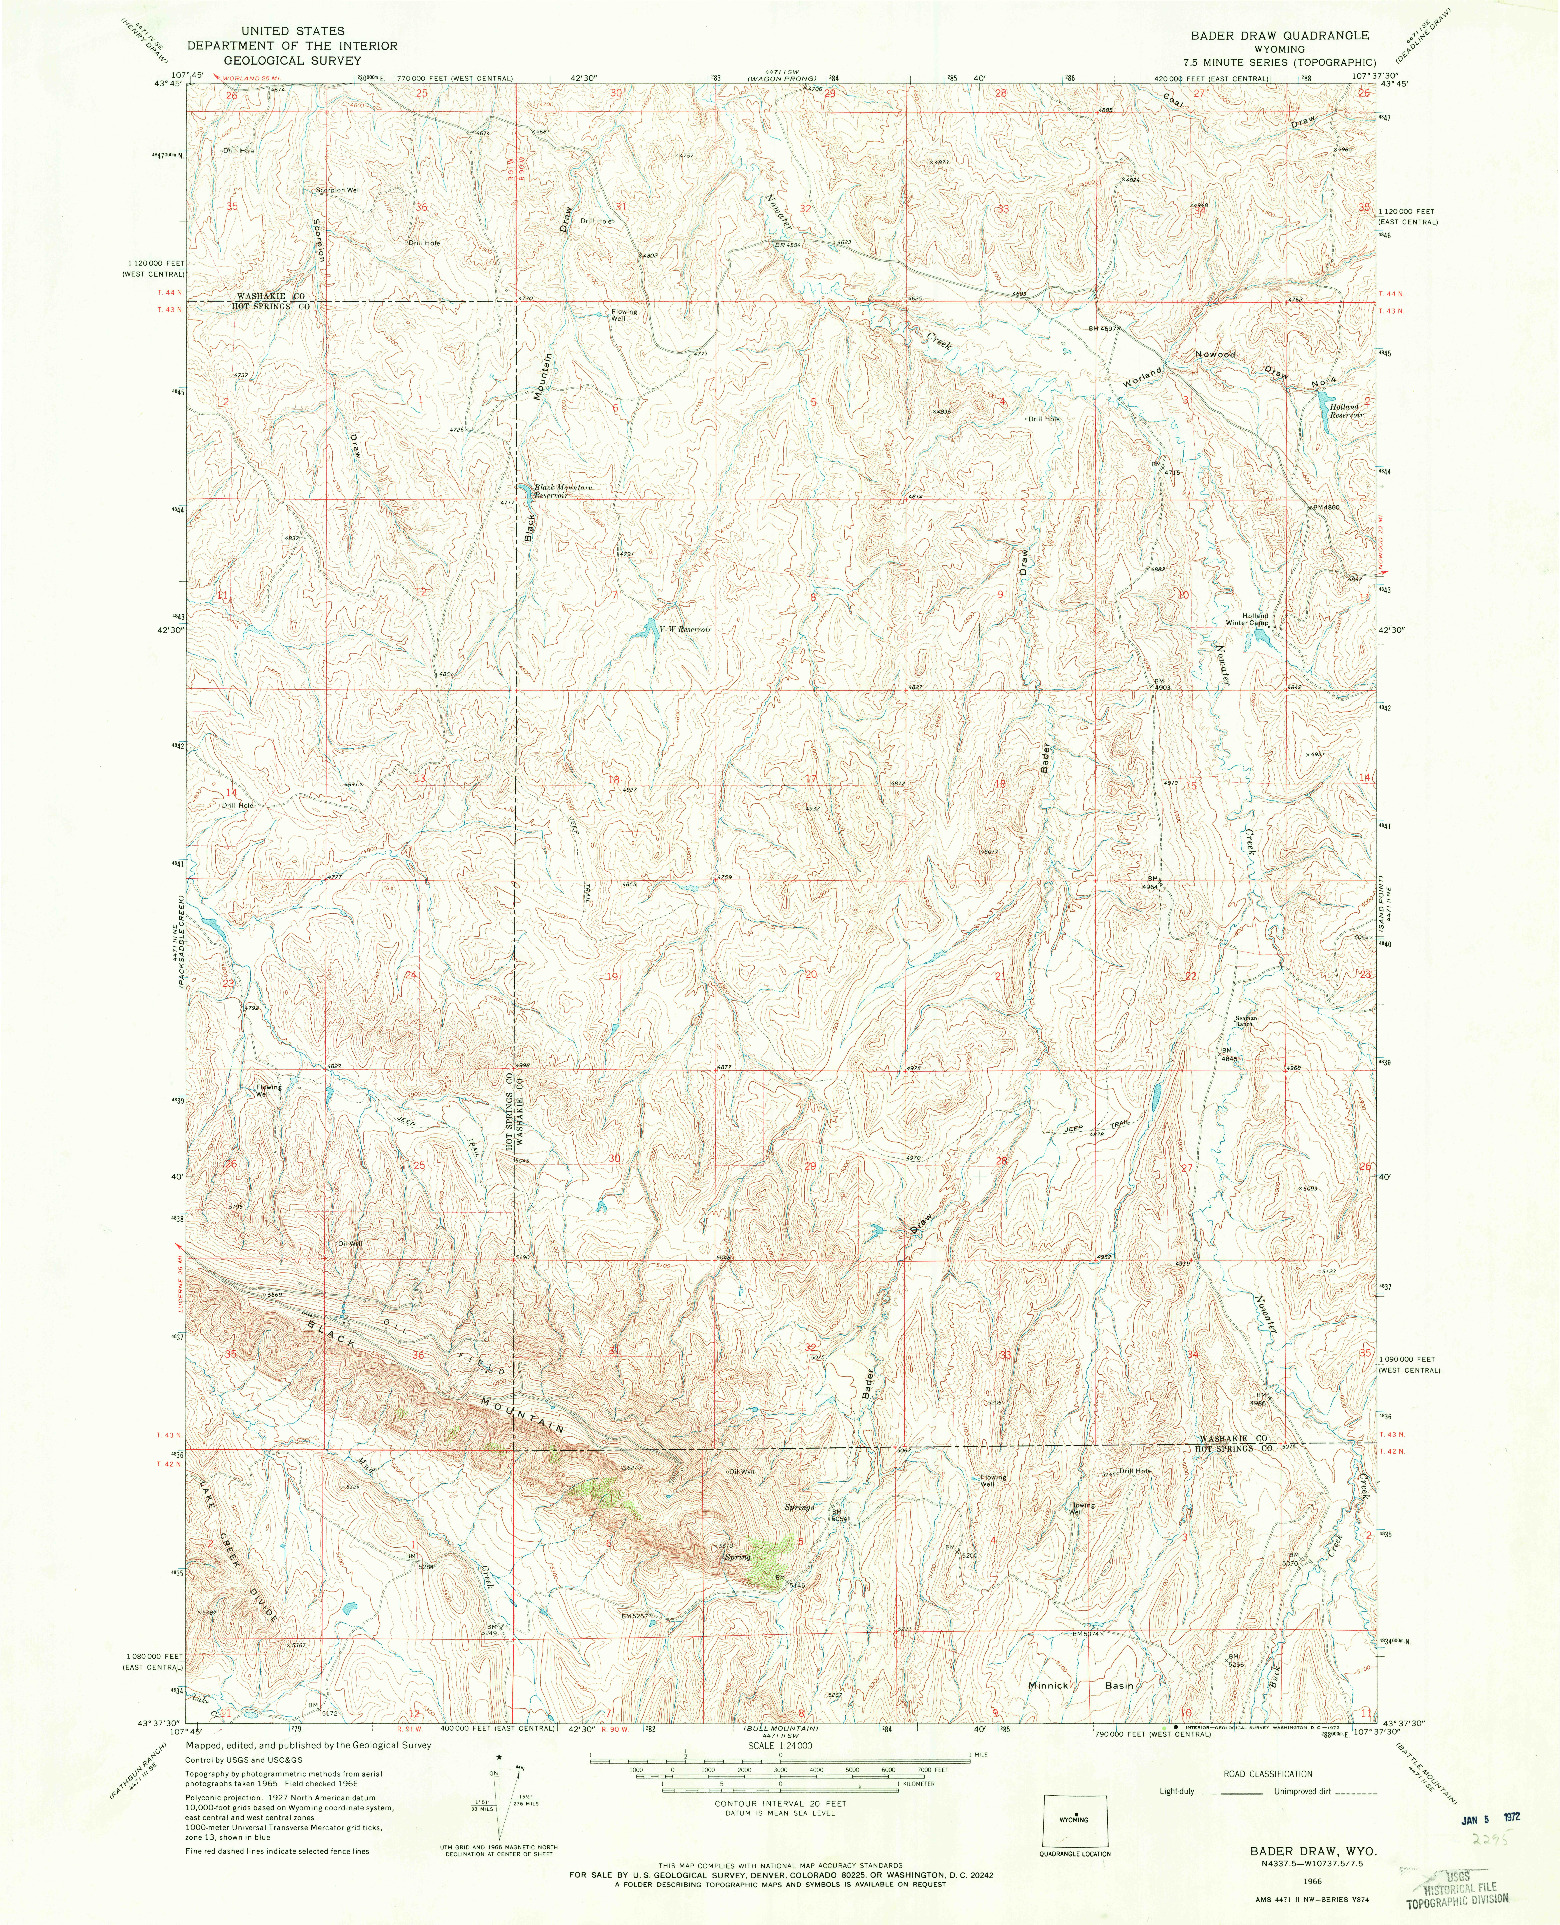 USGS 1:24000-SCALE QUADRANGLE FOR BADER DRAW, WY 1966